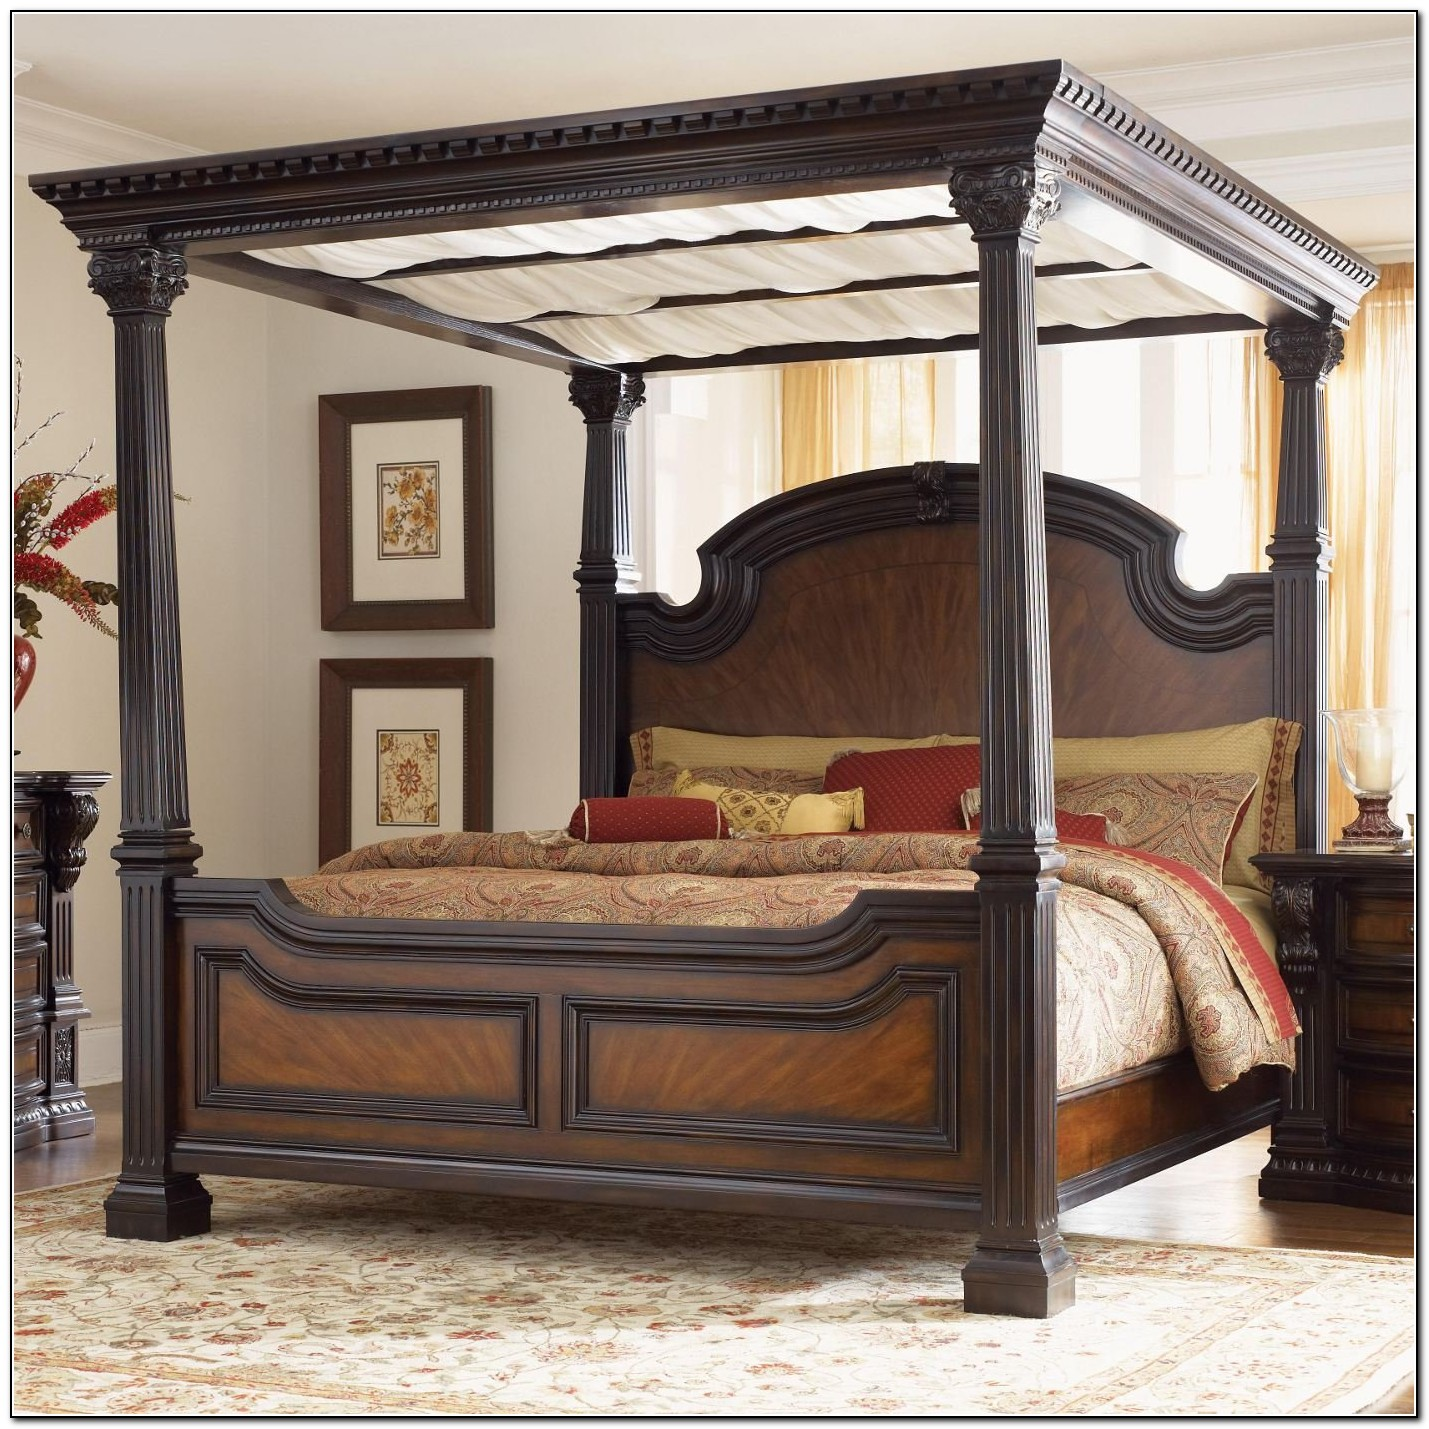 target king size bed frame target bed frames king beds home design ideas 19939